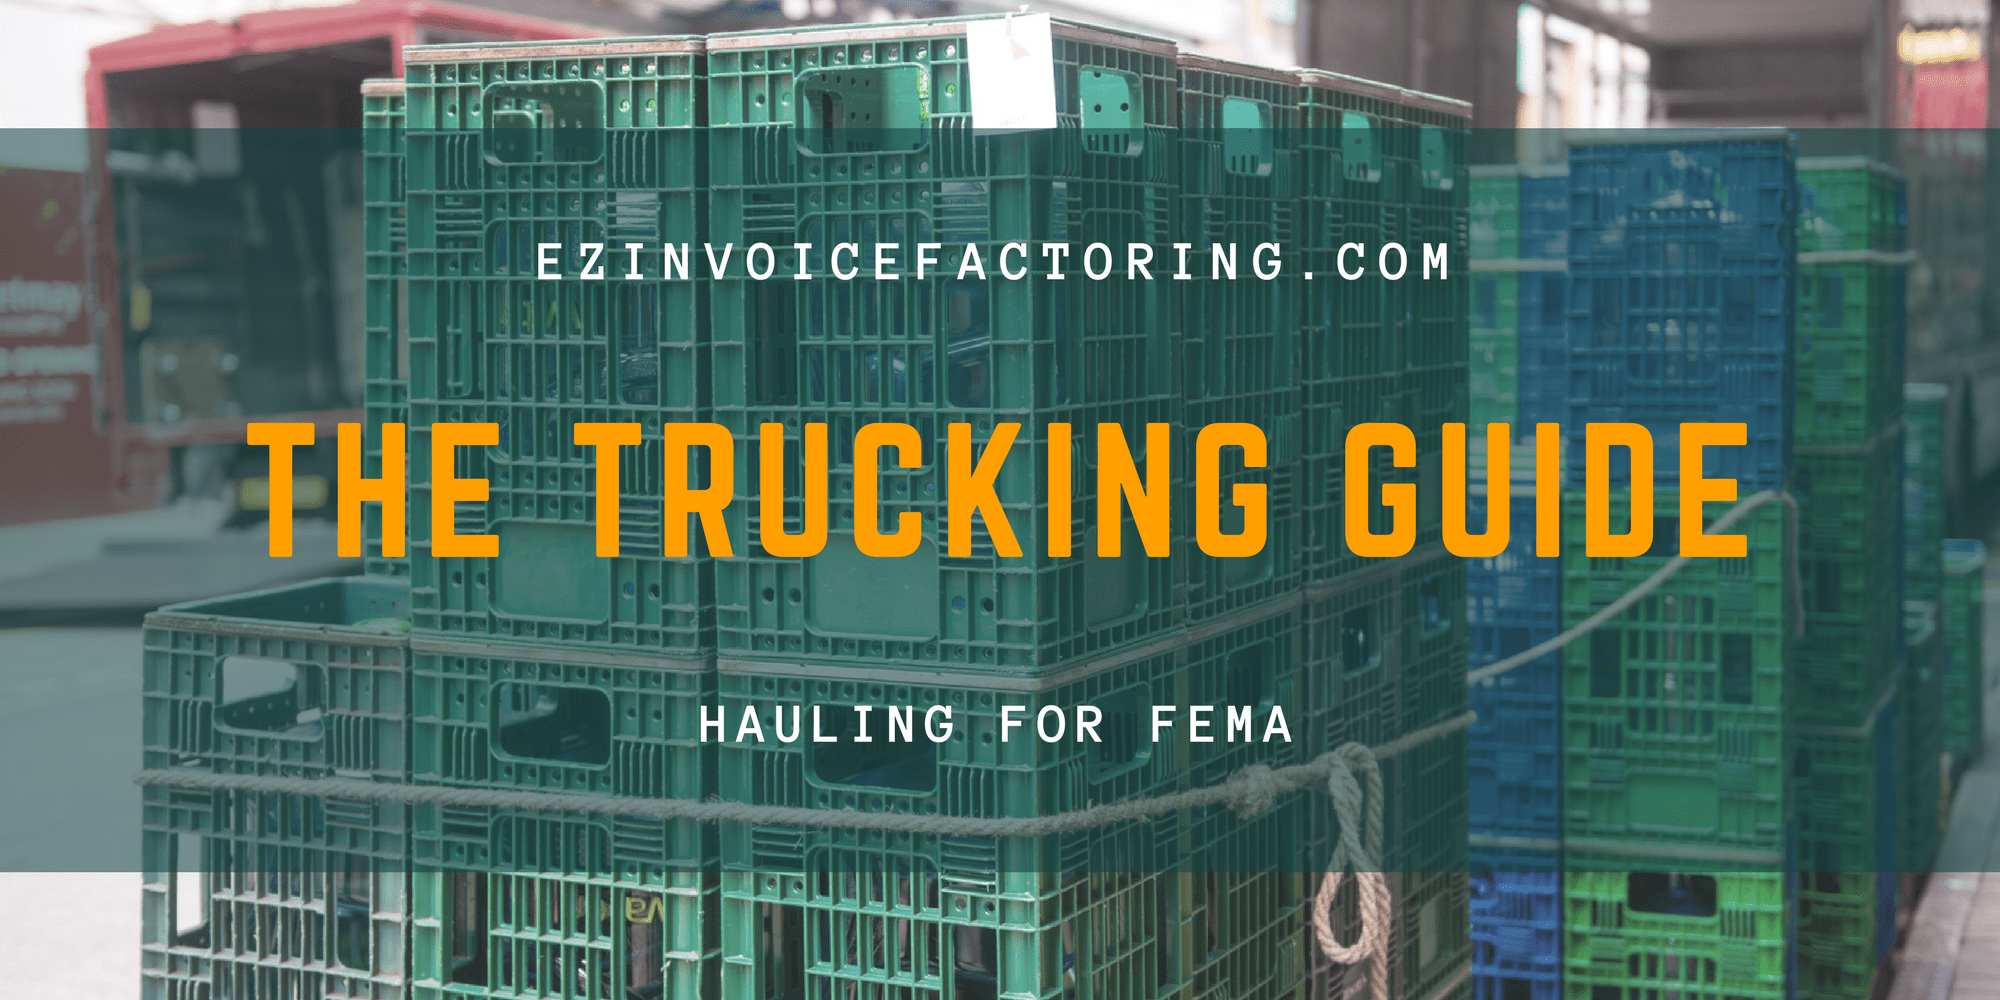 hauling for government contracts